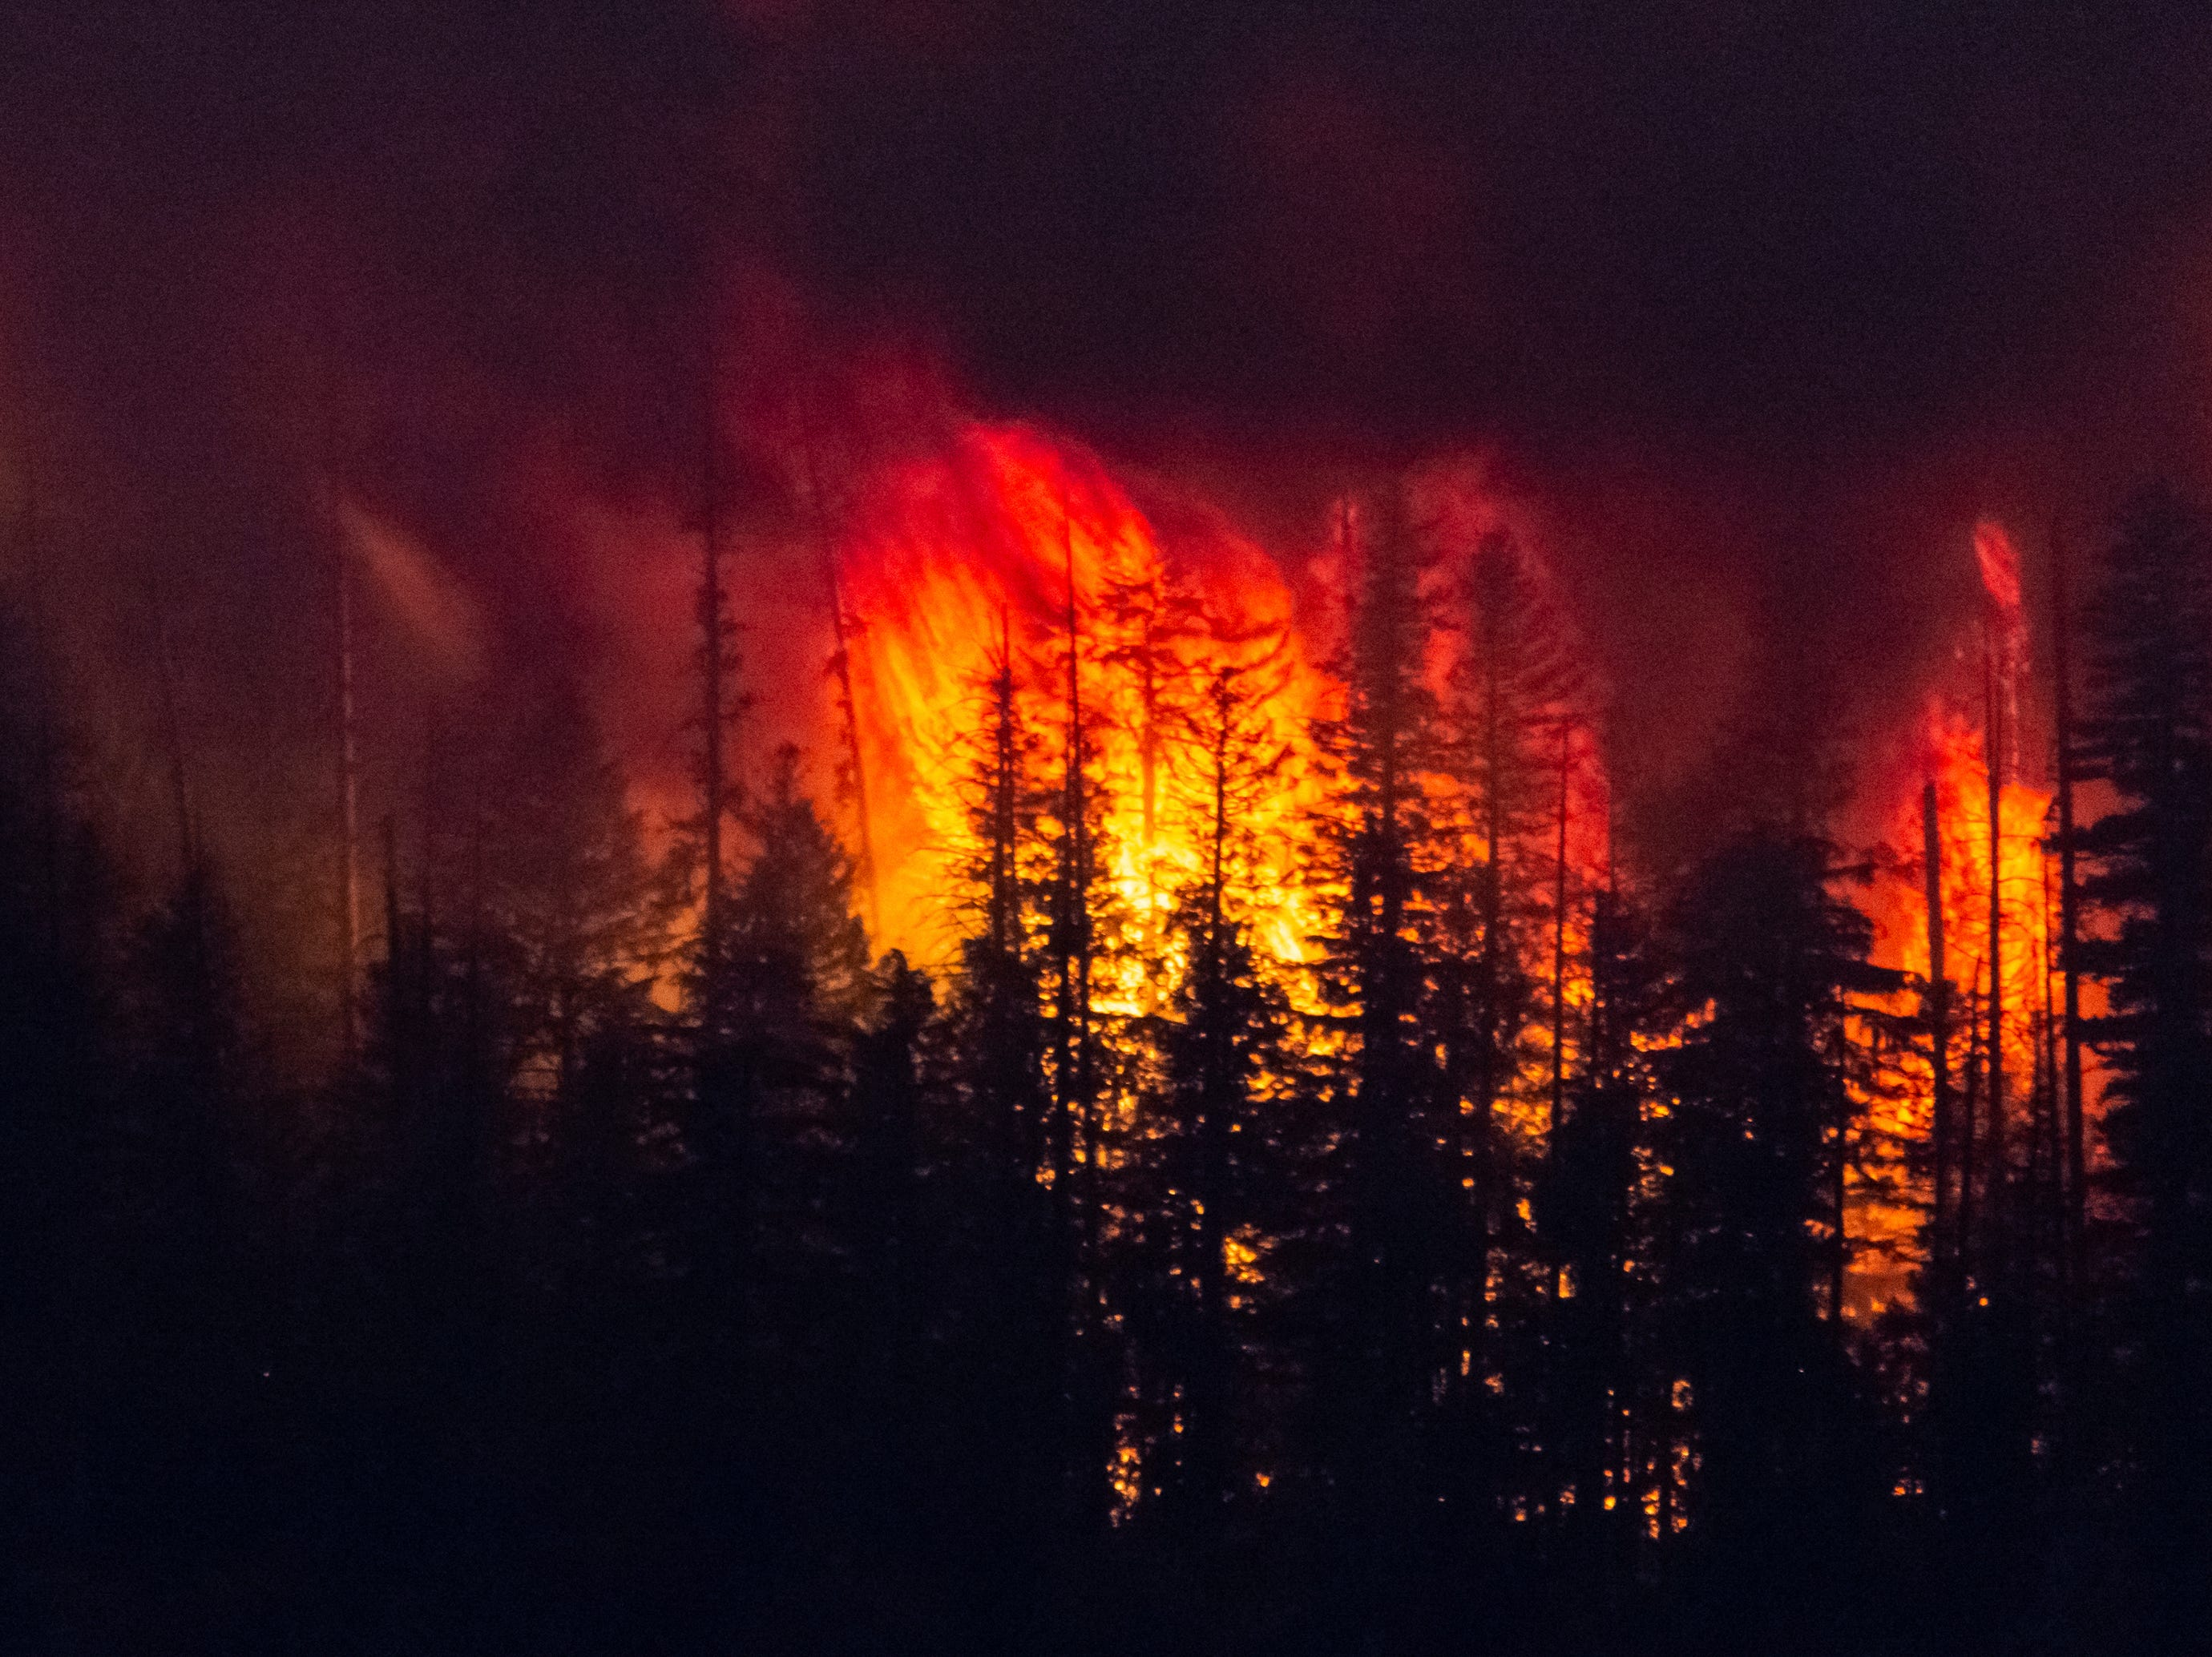 In this Sunday, Aug. 12, 2018 photo, the Howe Ridge Fire burns at Glacier National Park, Mont. At least nine homes and cabins in a historic district of Glacier National Park have been destroyed in a wildfire that raged through the Montana park's busiest area and prompted the hasty evacuation of hundreds of visitors. Park officials said Tuesday, Aug. 14, 2018, that the lost buildings include the so-called Big House at Kelly's Camp, a resort developed early last century serving auto travelers along Glacier's famous Going-to-the-Sun Road. (Kristy Pancoast via AP)